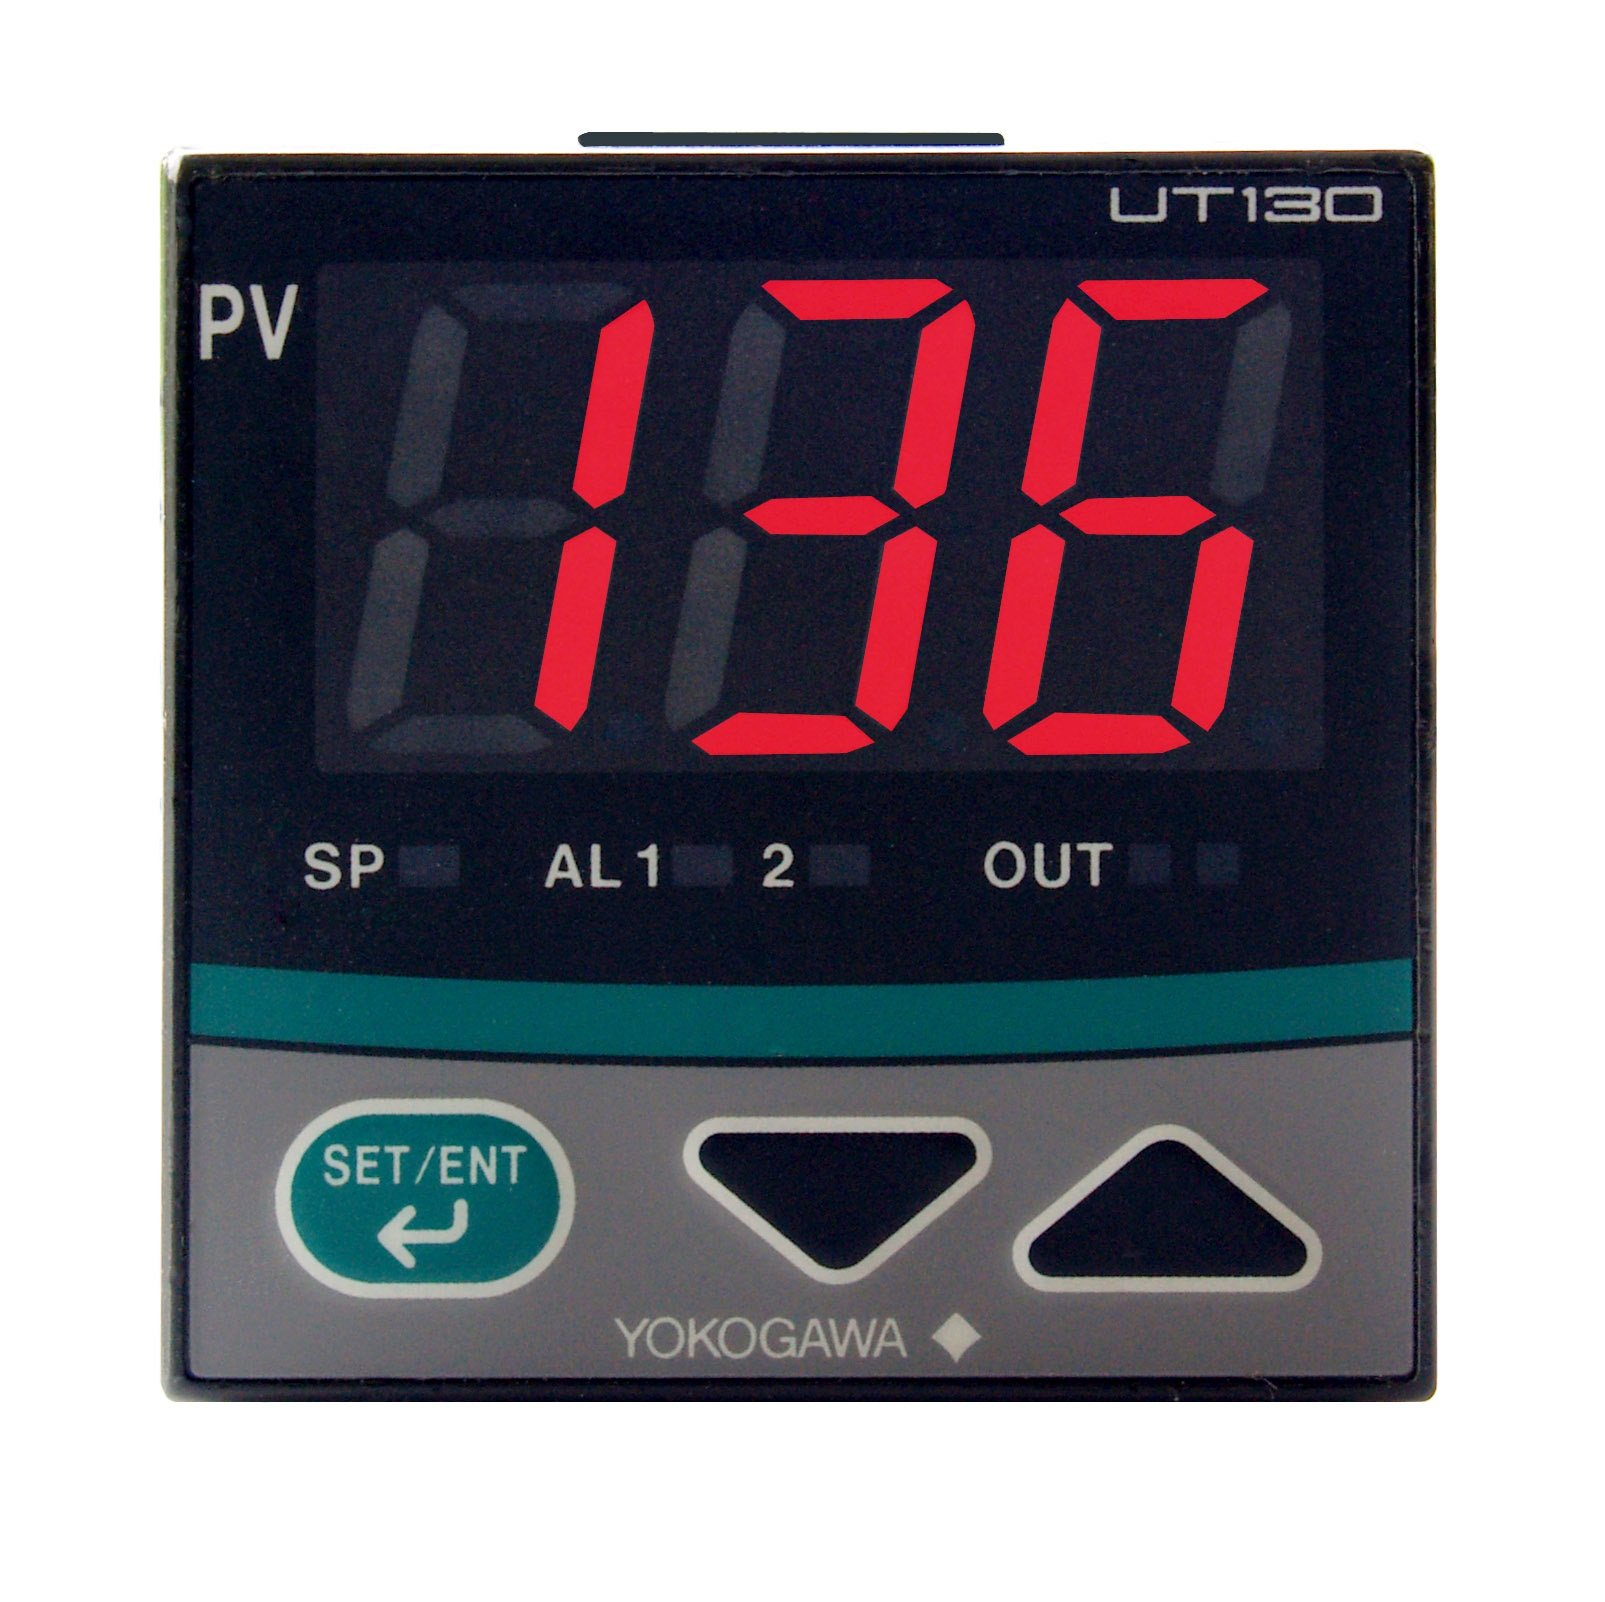 Yokogawa 1/16 DIN Temperature Controller with Heating Type Relay Output, with Cooling Type Relay Output, with 24 VDC/24 VAC Power Supply